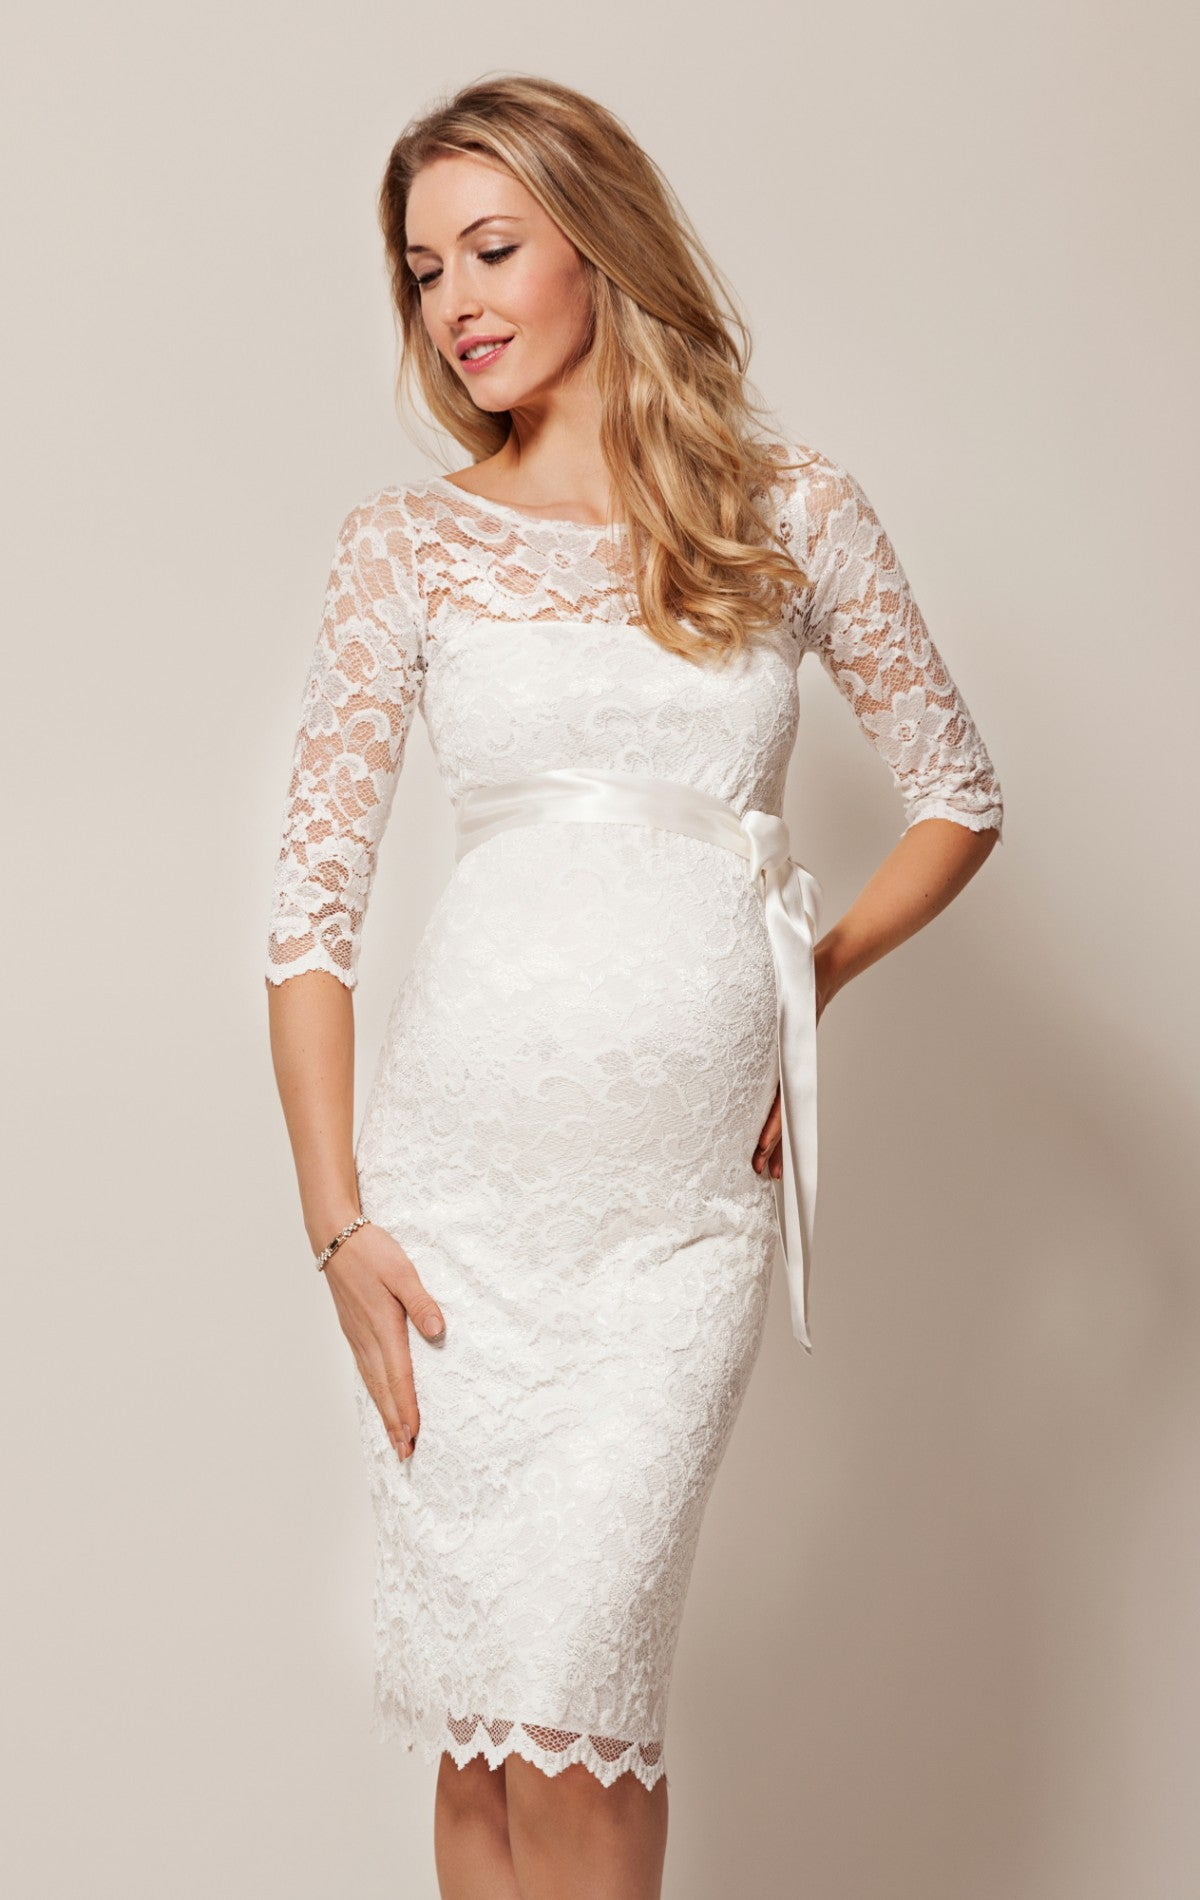 Tiffany Rose Maternity Canada | Formal Dresses & Gowns | Free Shipping